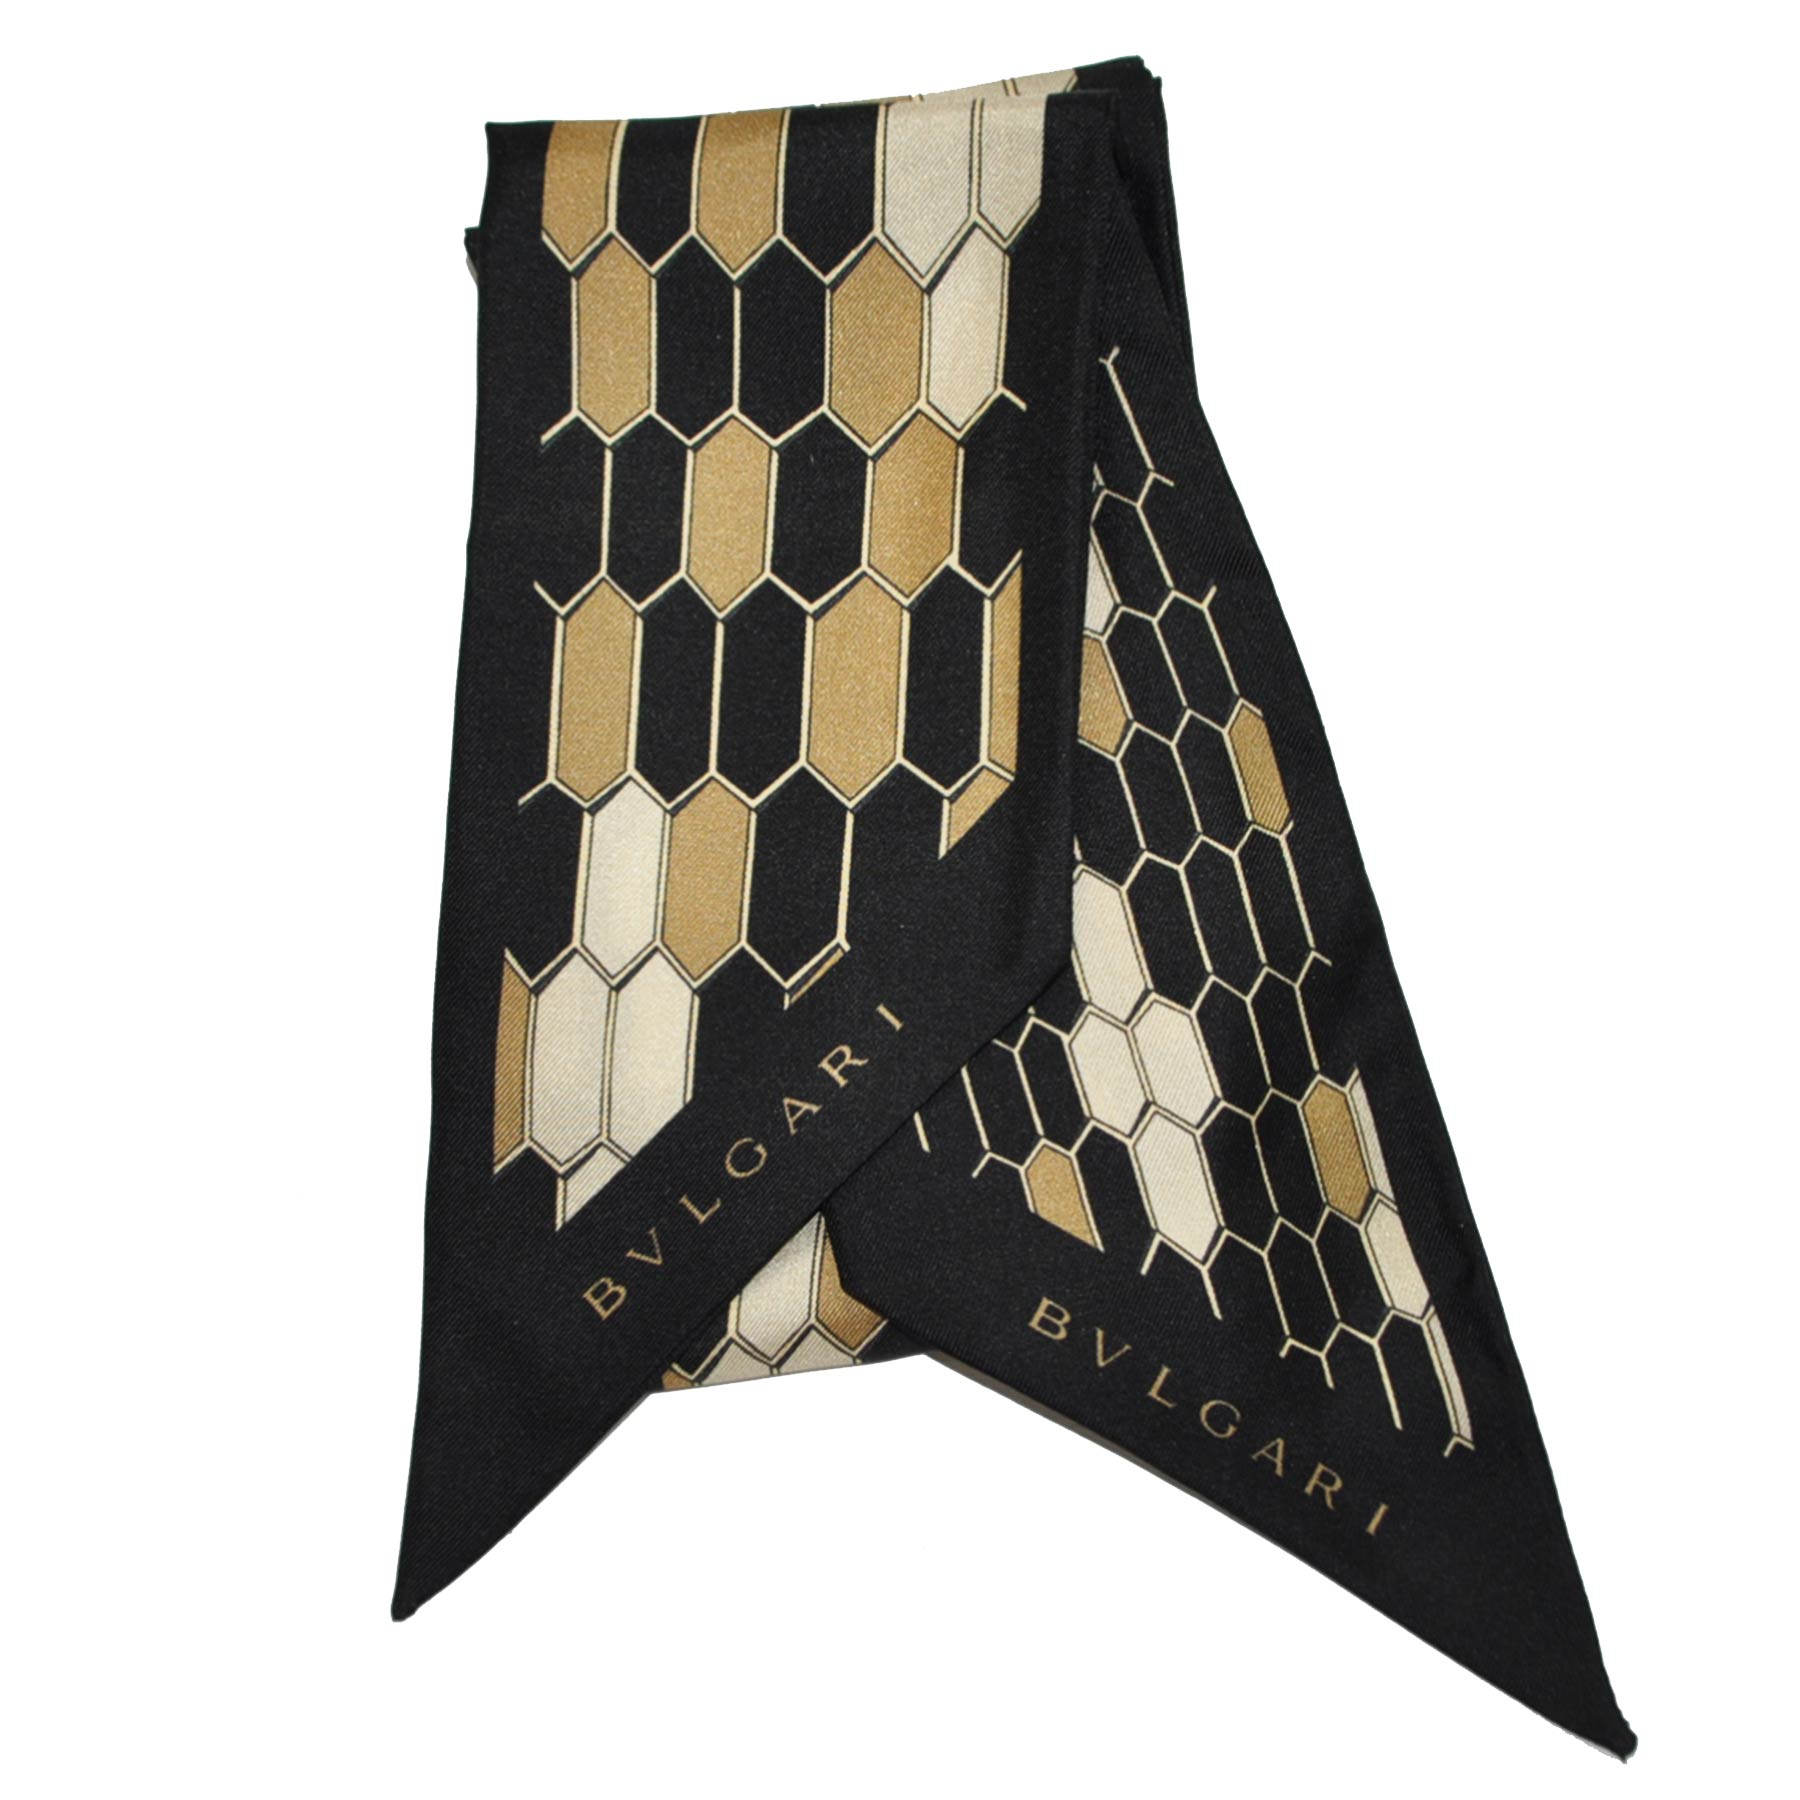 Bvlgari Scarf Black Signature Twilly